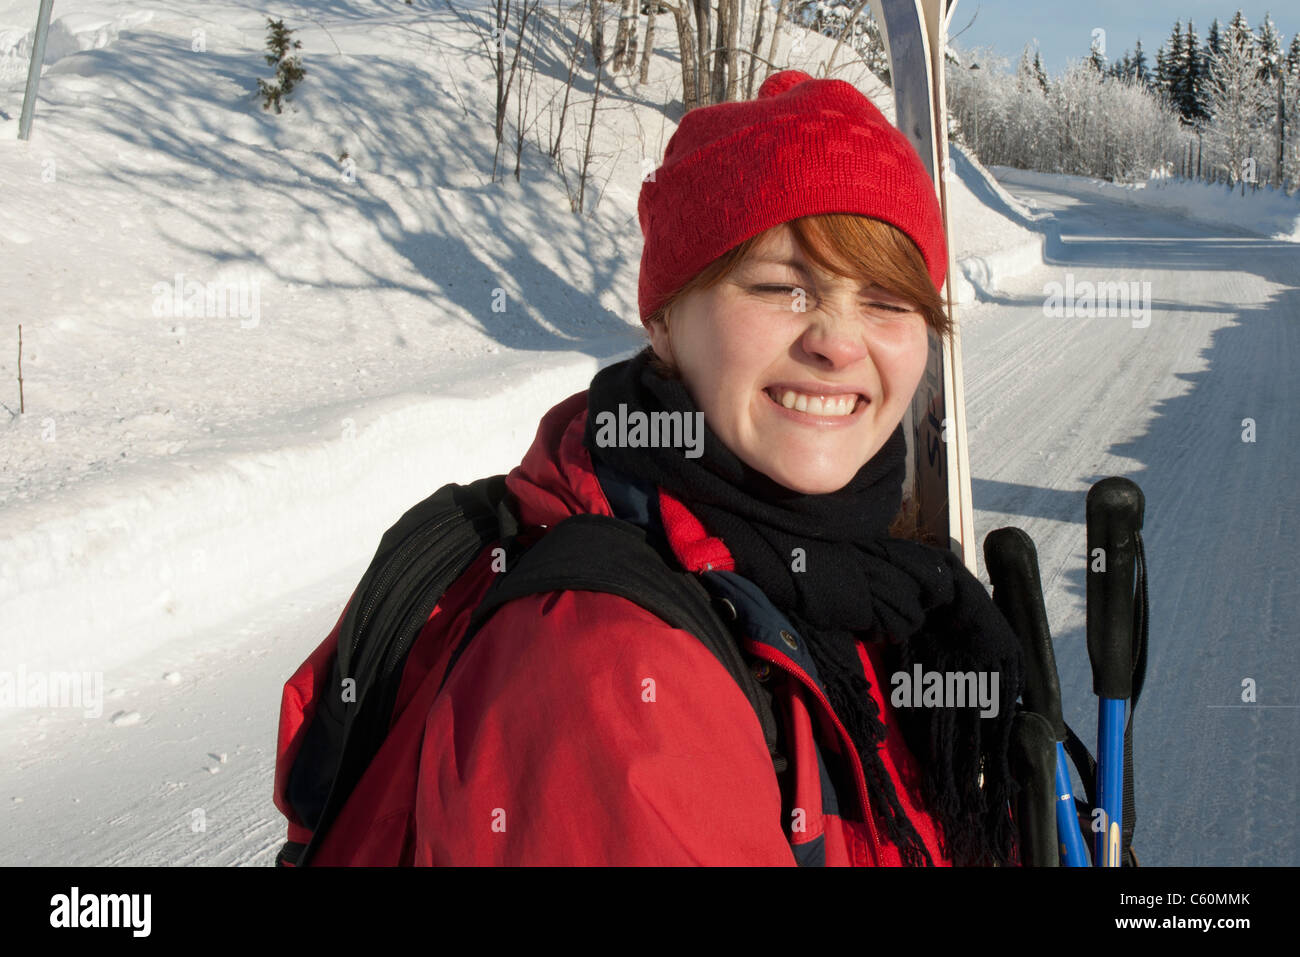 Woman riding ski lift - Stock Image